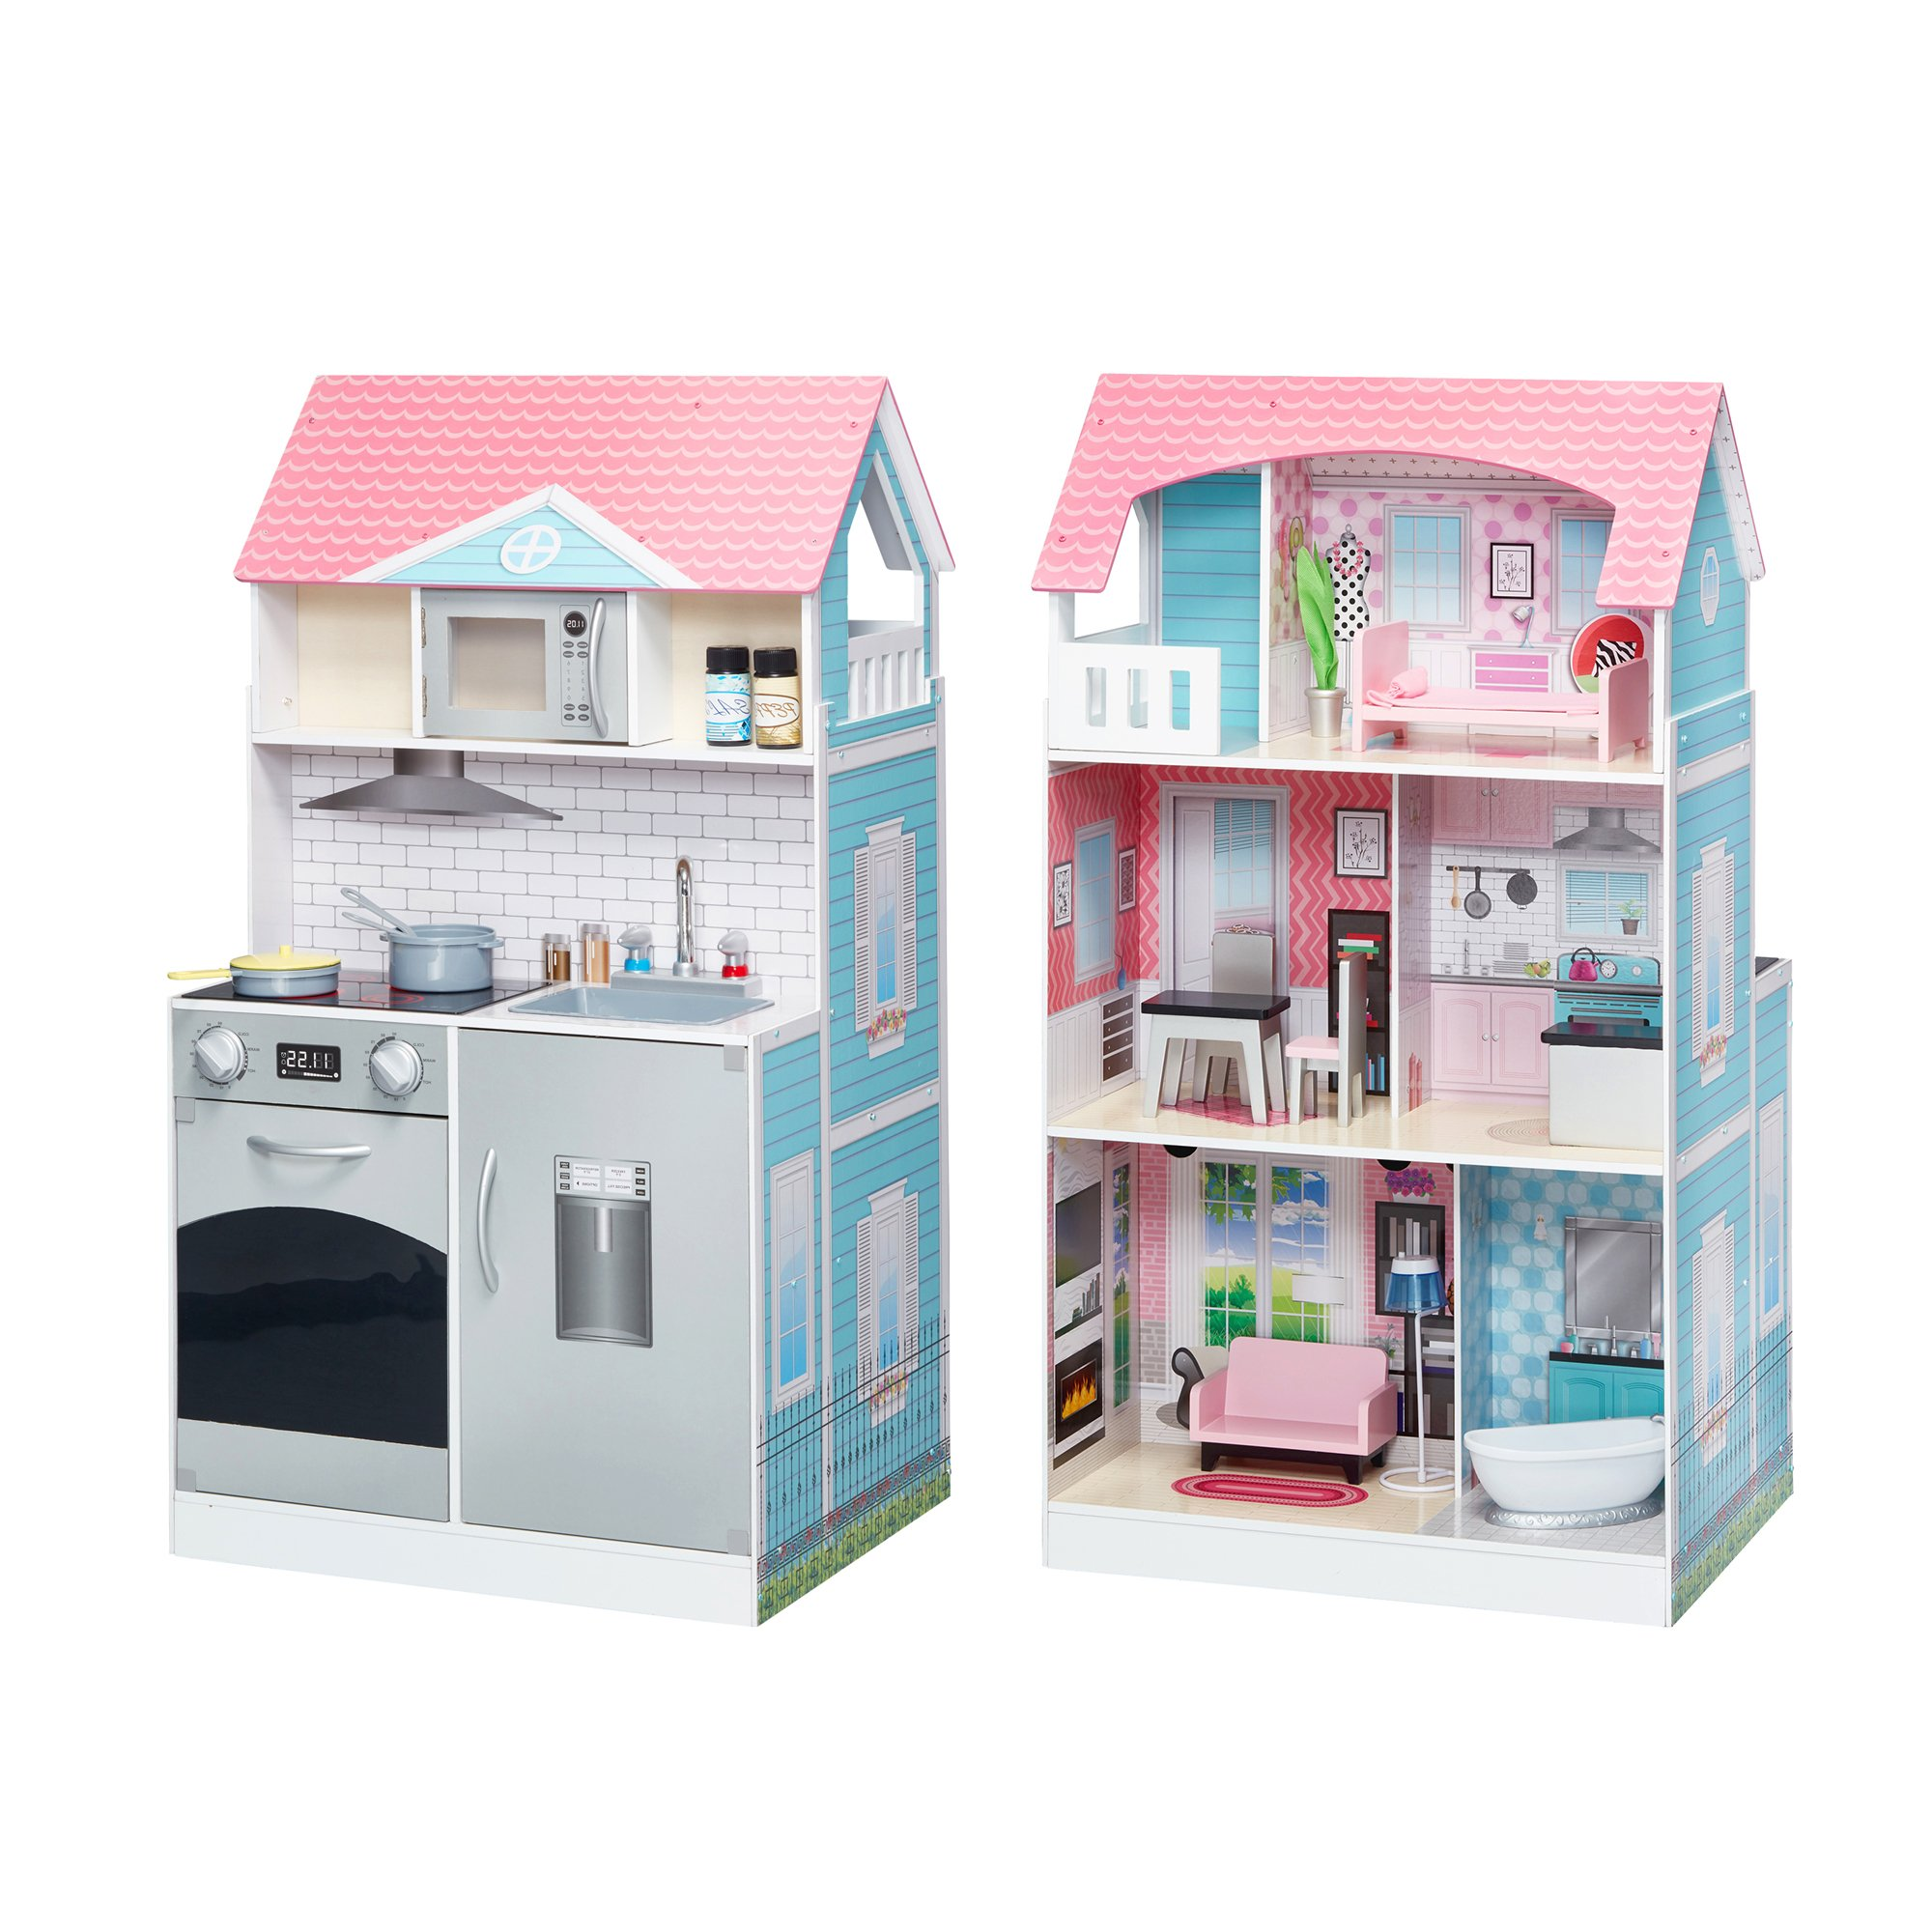 Teamson Kids - Wonderland Ariel 2 in 1 Doll House & Play Kitchen - Muti-color